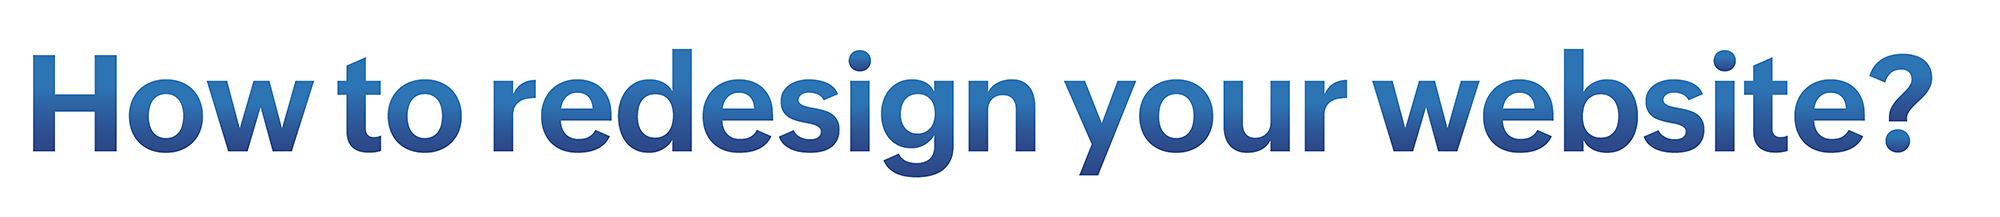 How to redesign your website?